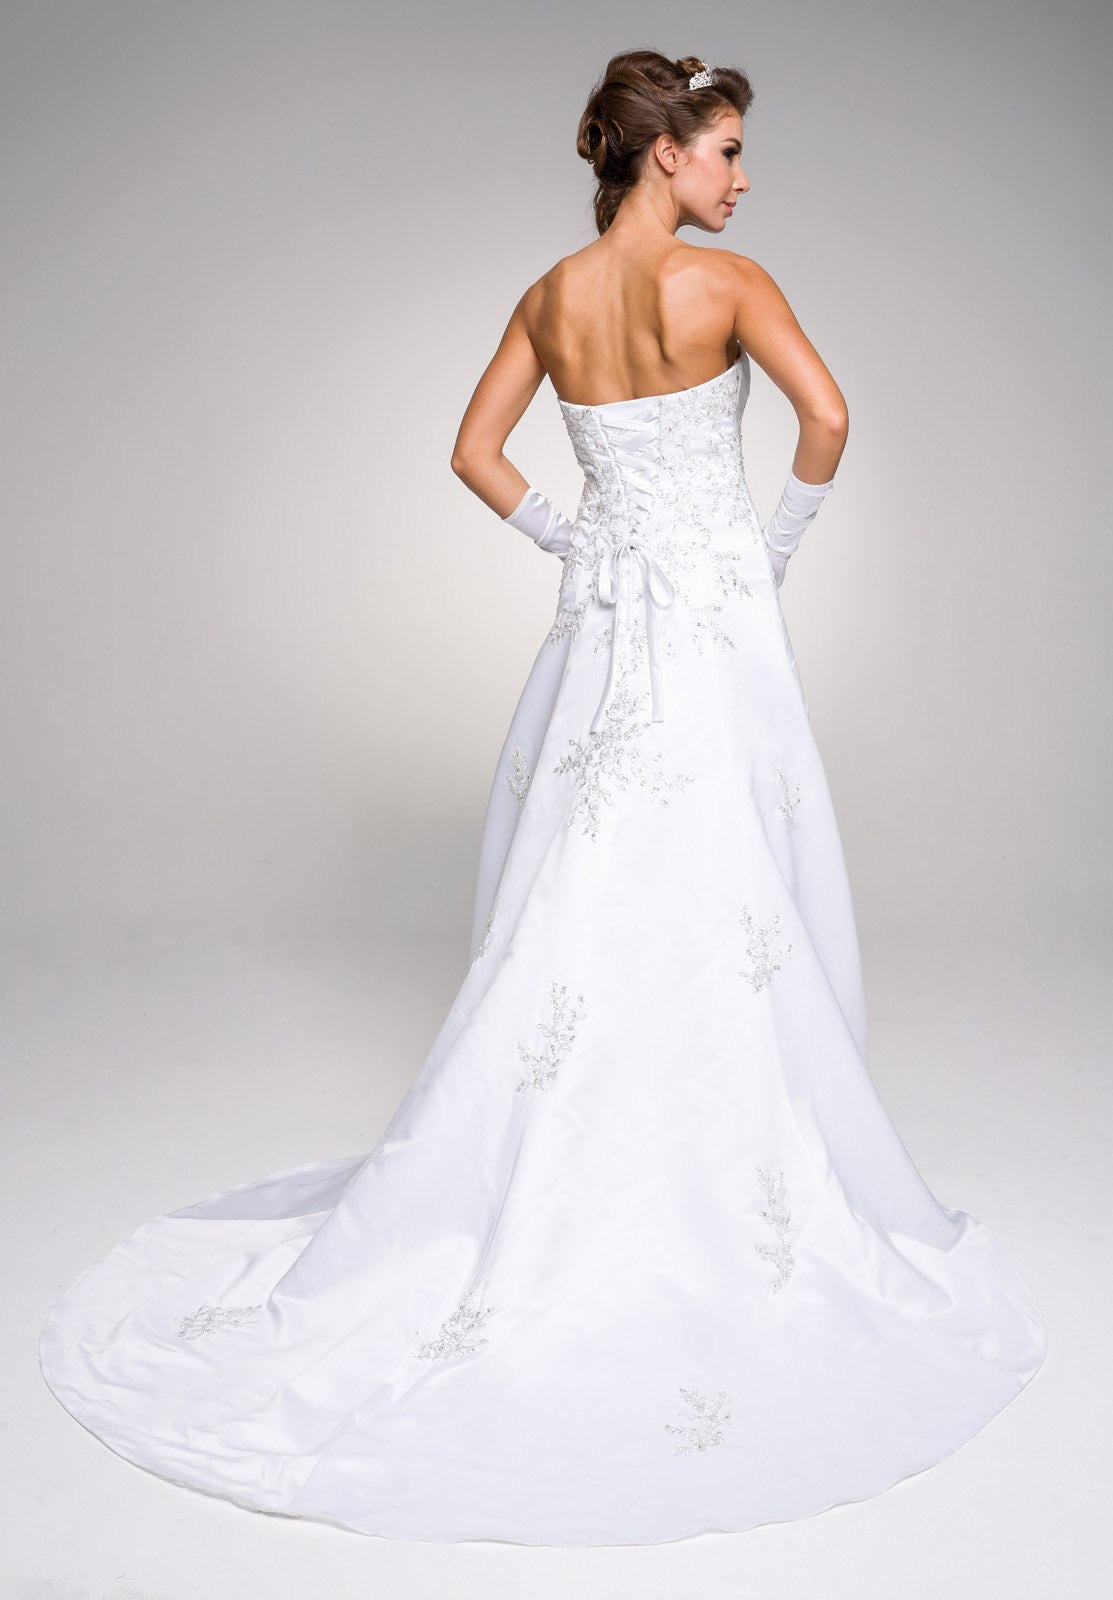 Sweetheart Neckline Embroidered Wedding Gown with Drapes White ...